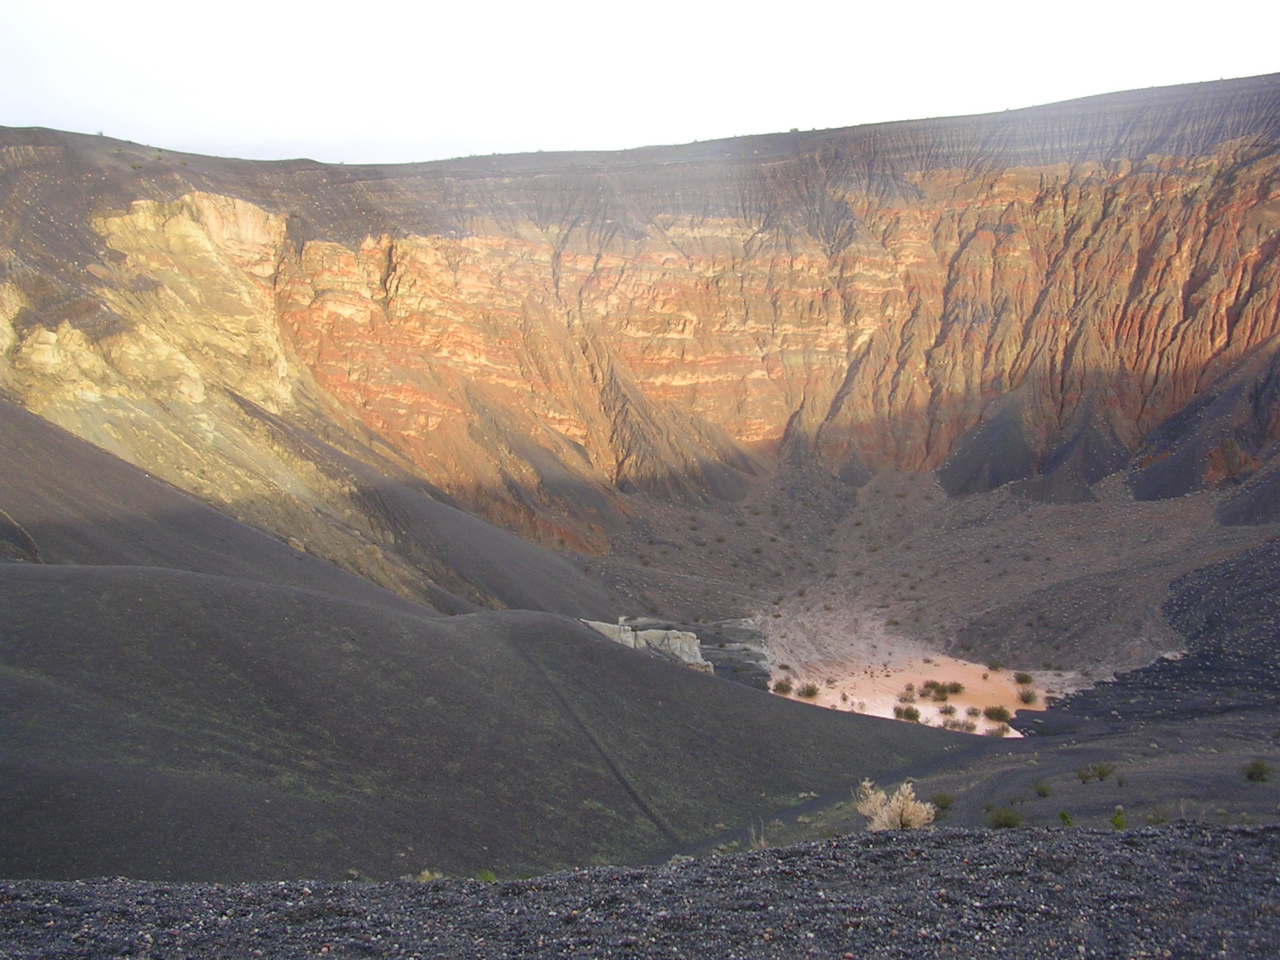 Ubehebe Crater, formed by a series of phreatic eruptions over 10,000 years ago.